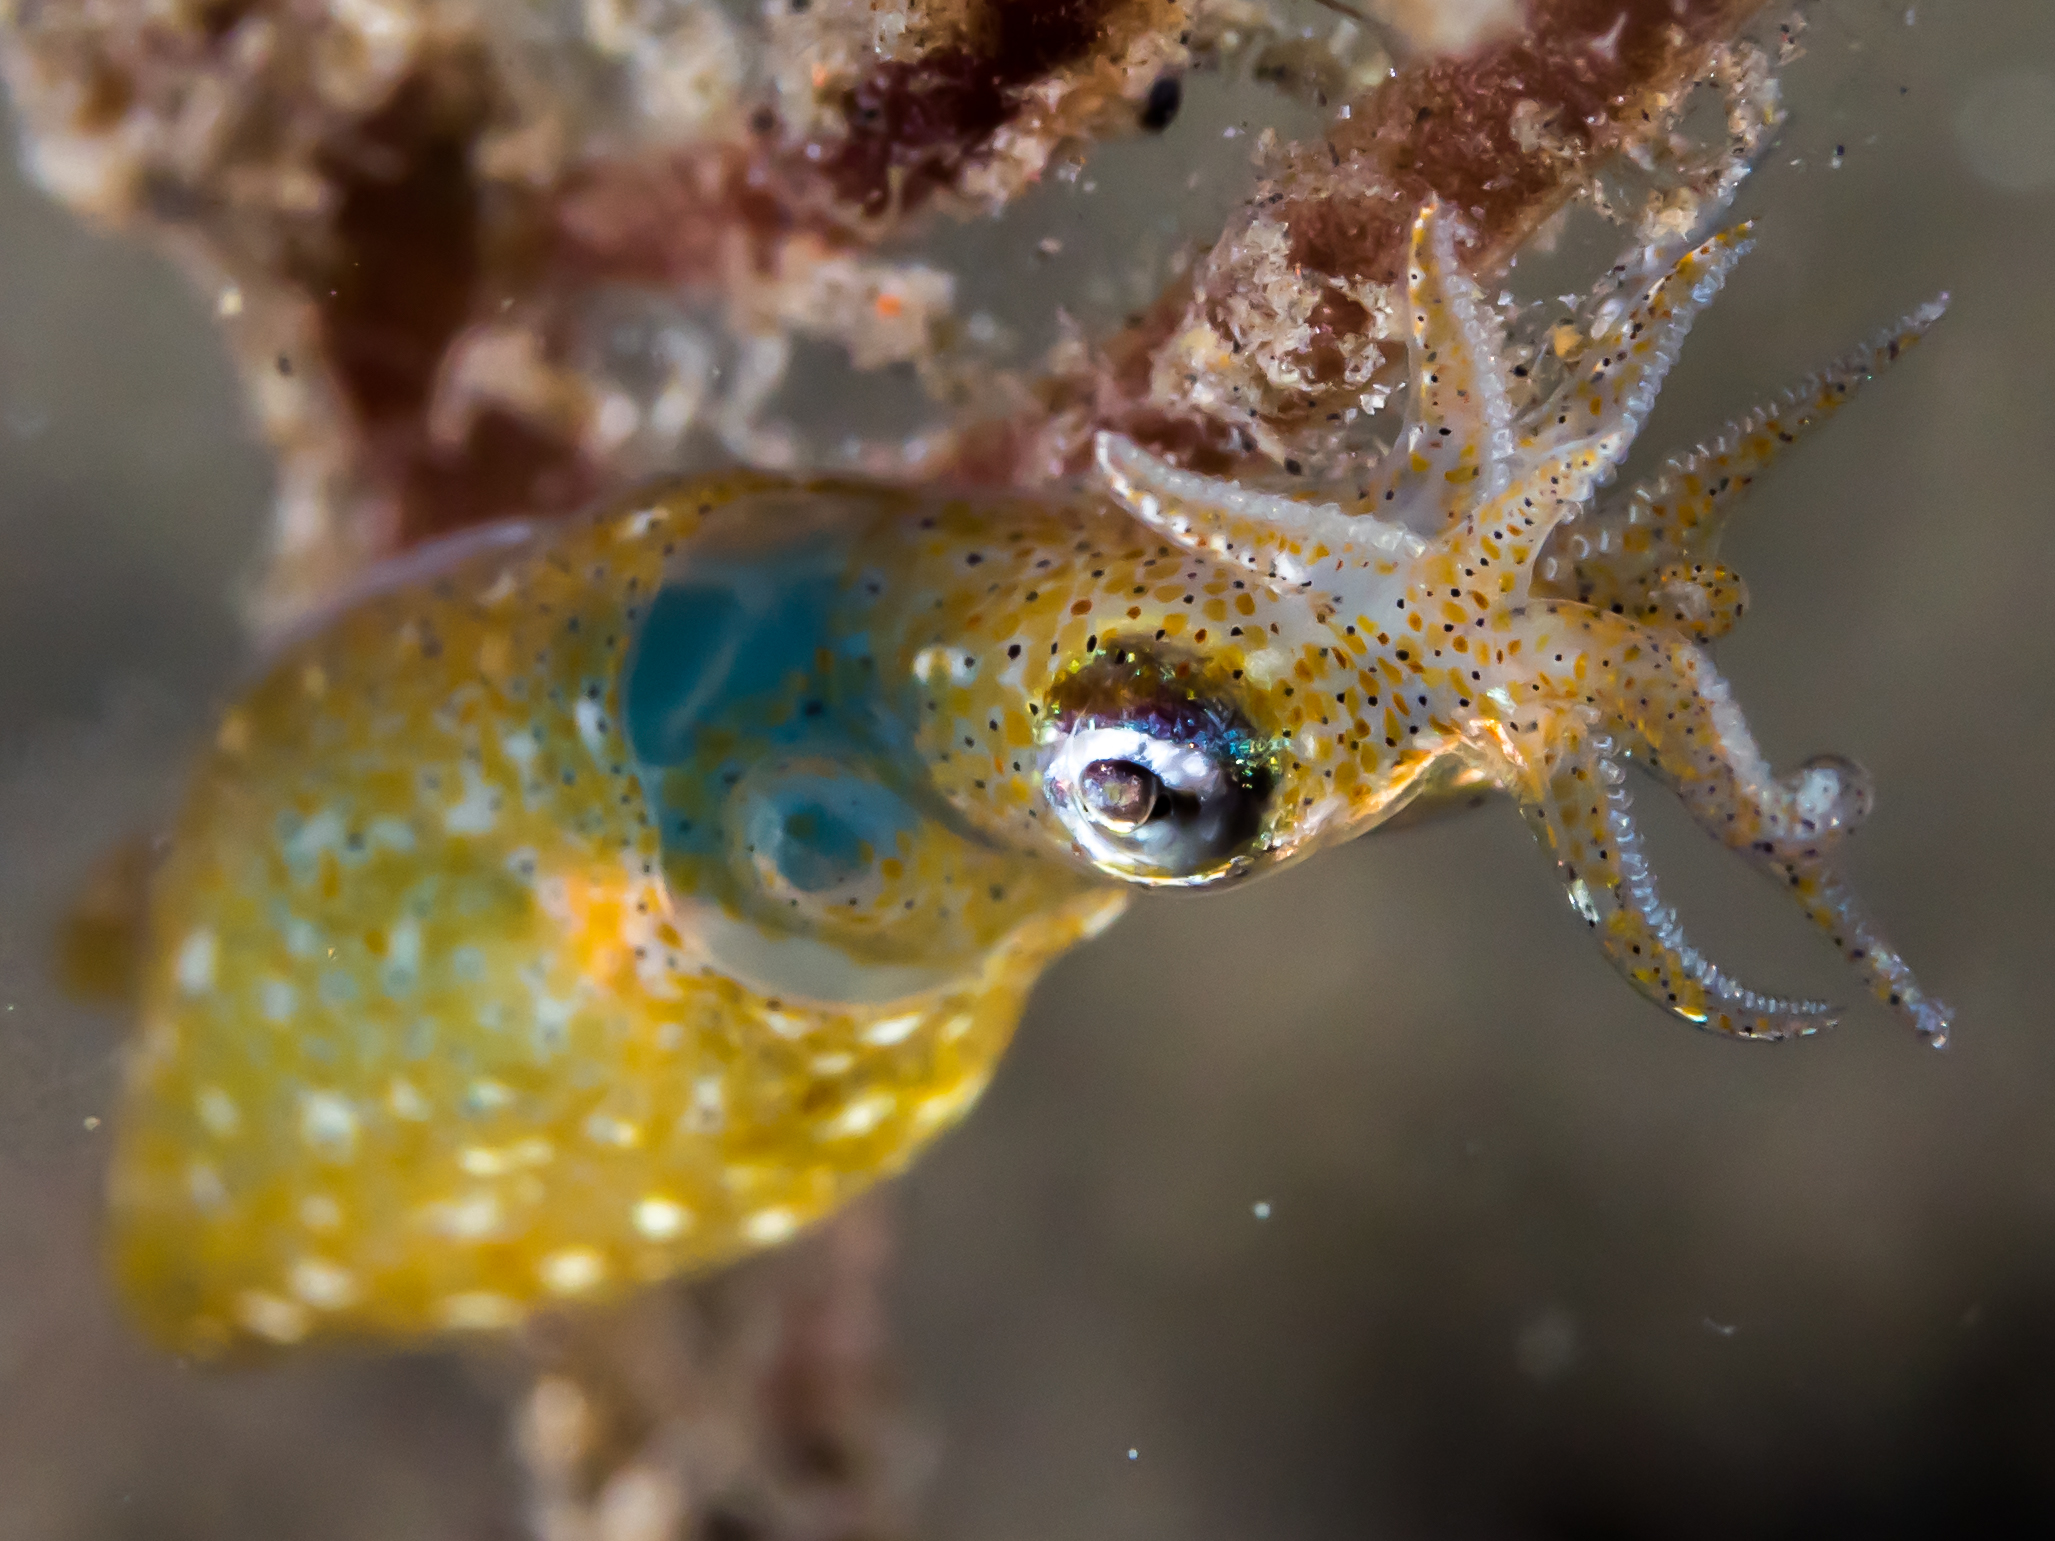 Ocean Acidification is no Small Matter to Two-Toned Pygmy Squid Reproduction